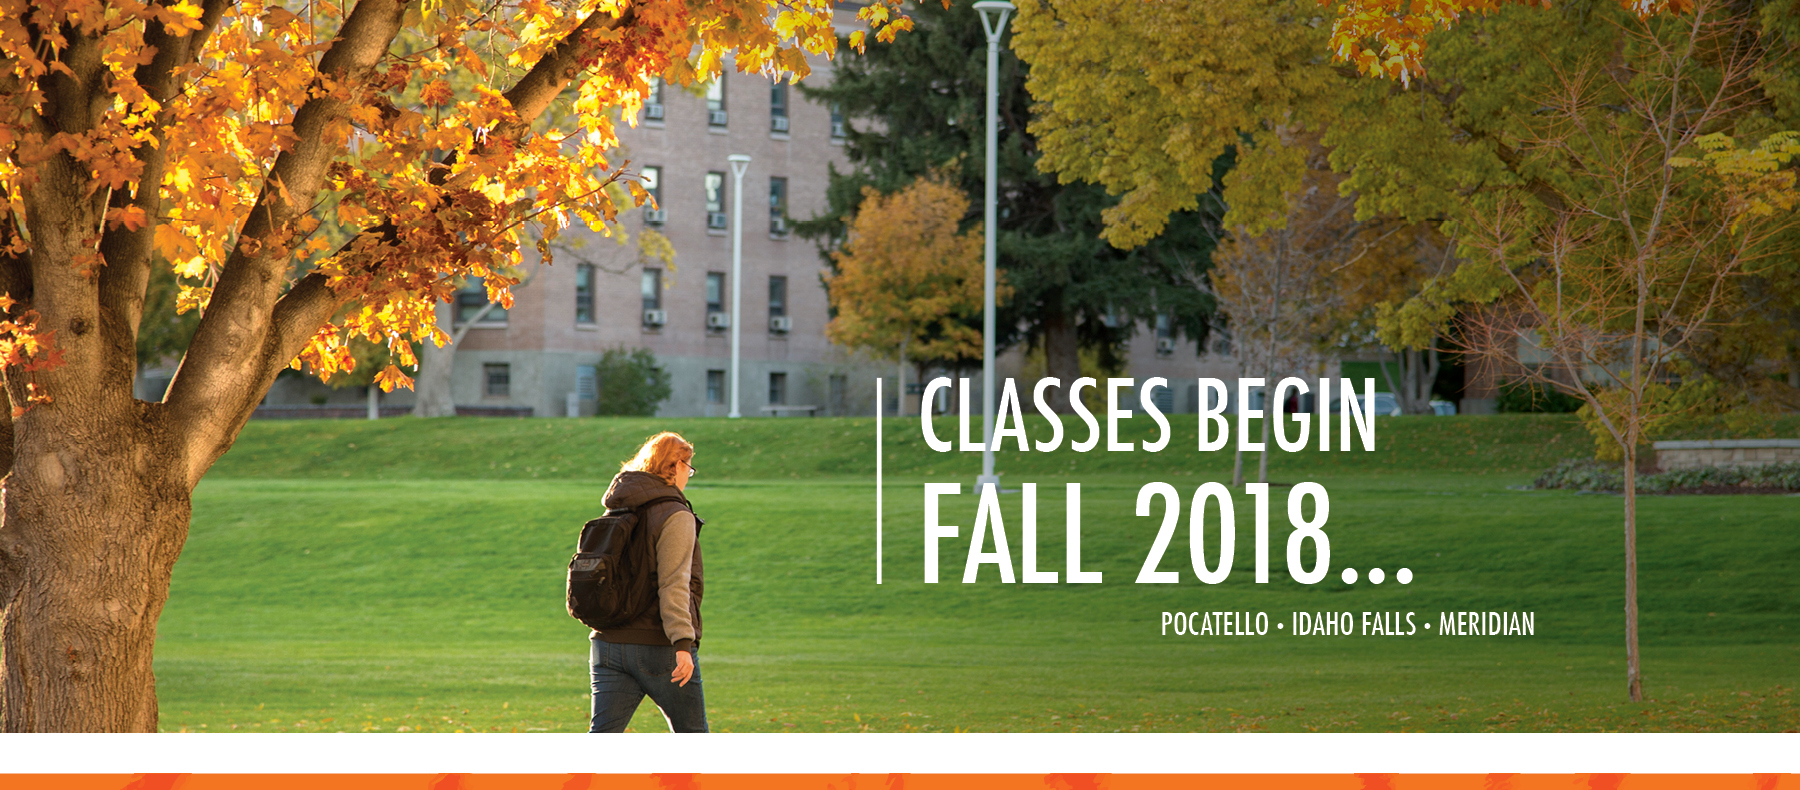 MHA Classes Begin Fall 2018 in Pocatello, Idaho Falls & Meridian